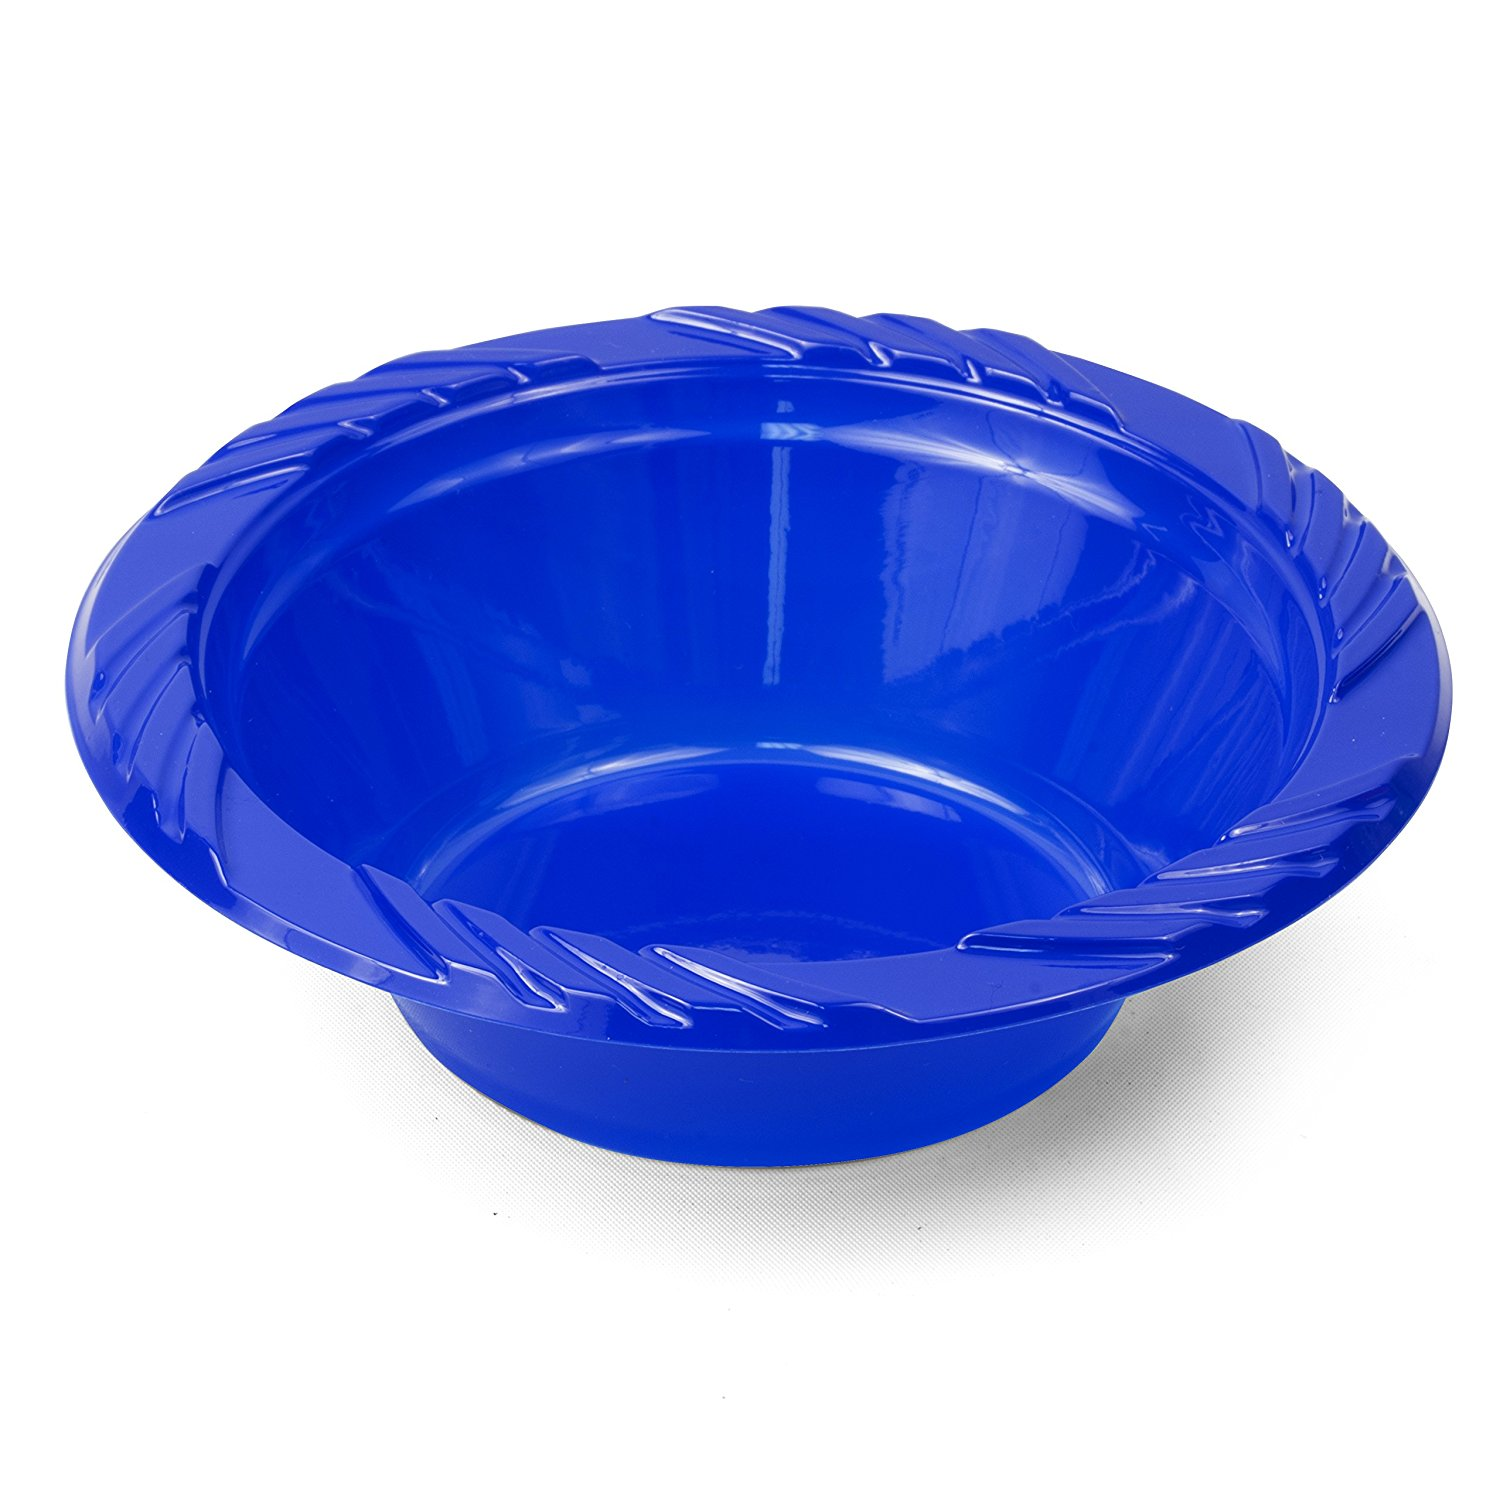 Great Price For 125 Count 12oz Plastic Party Bowls